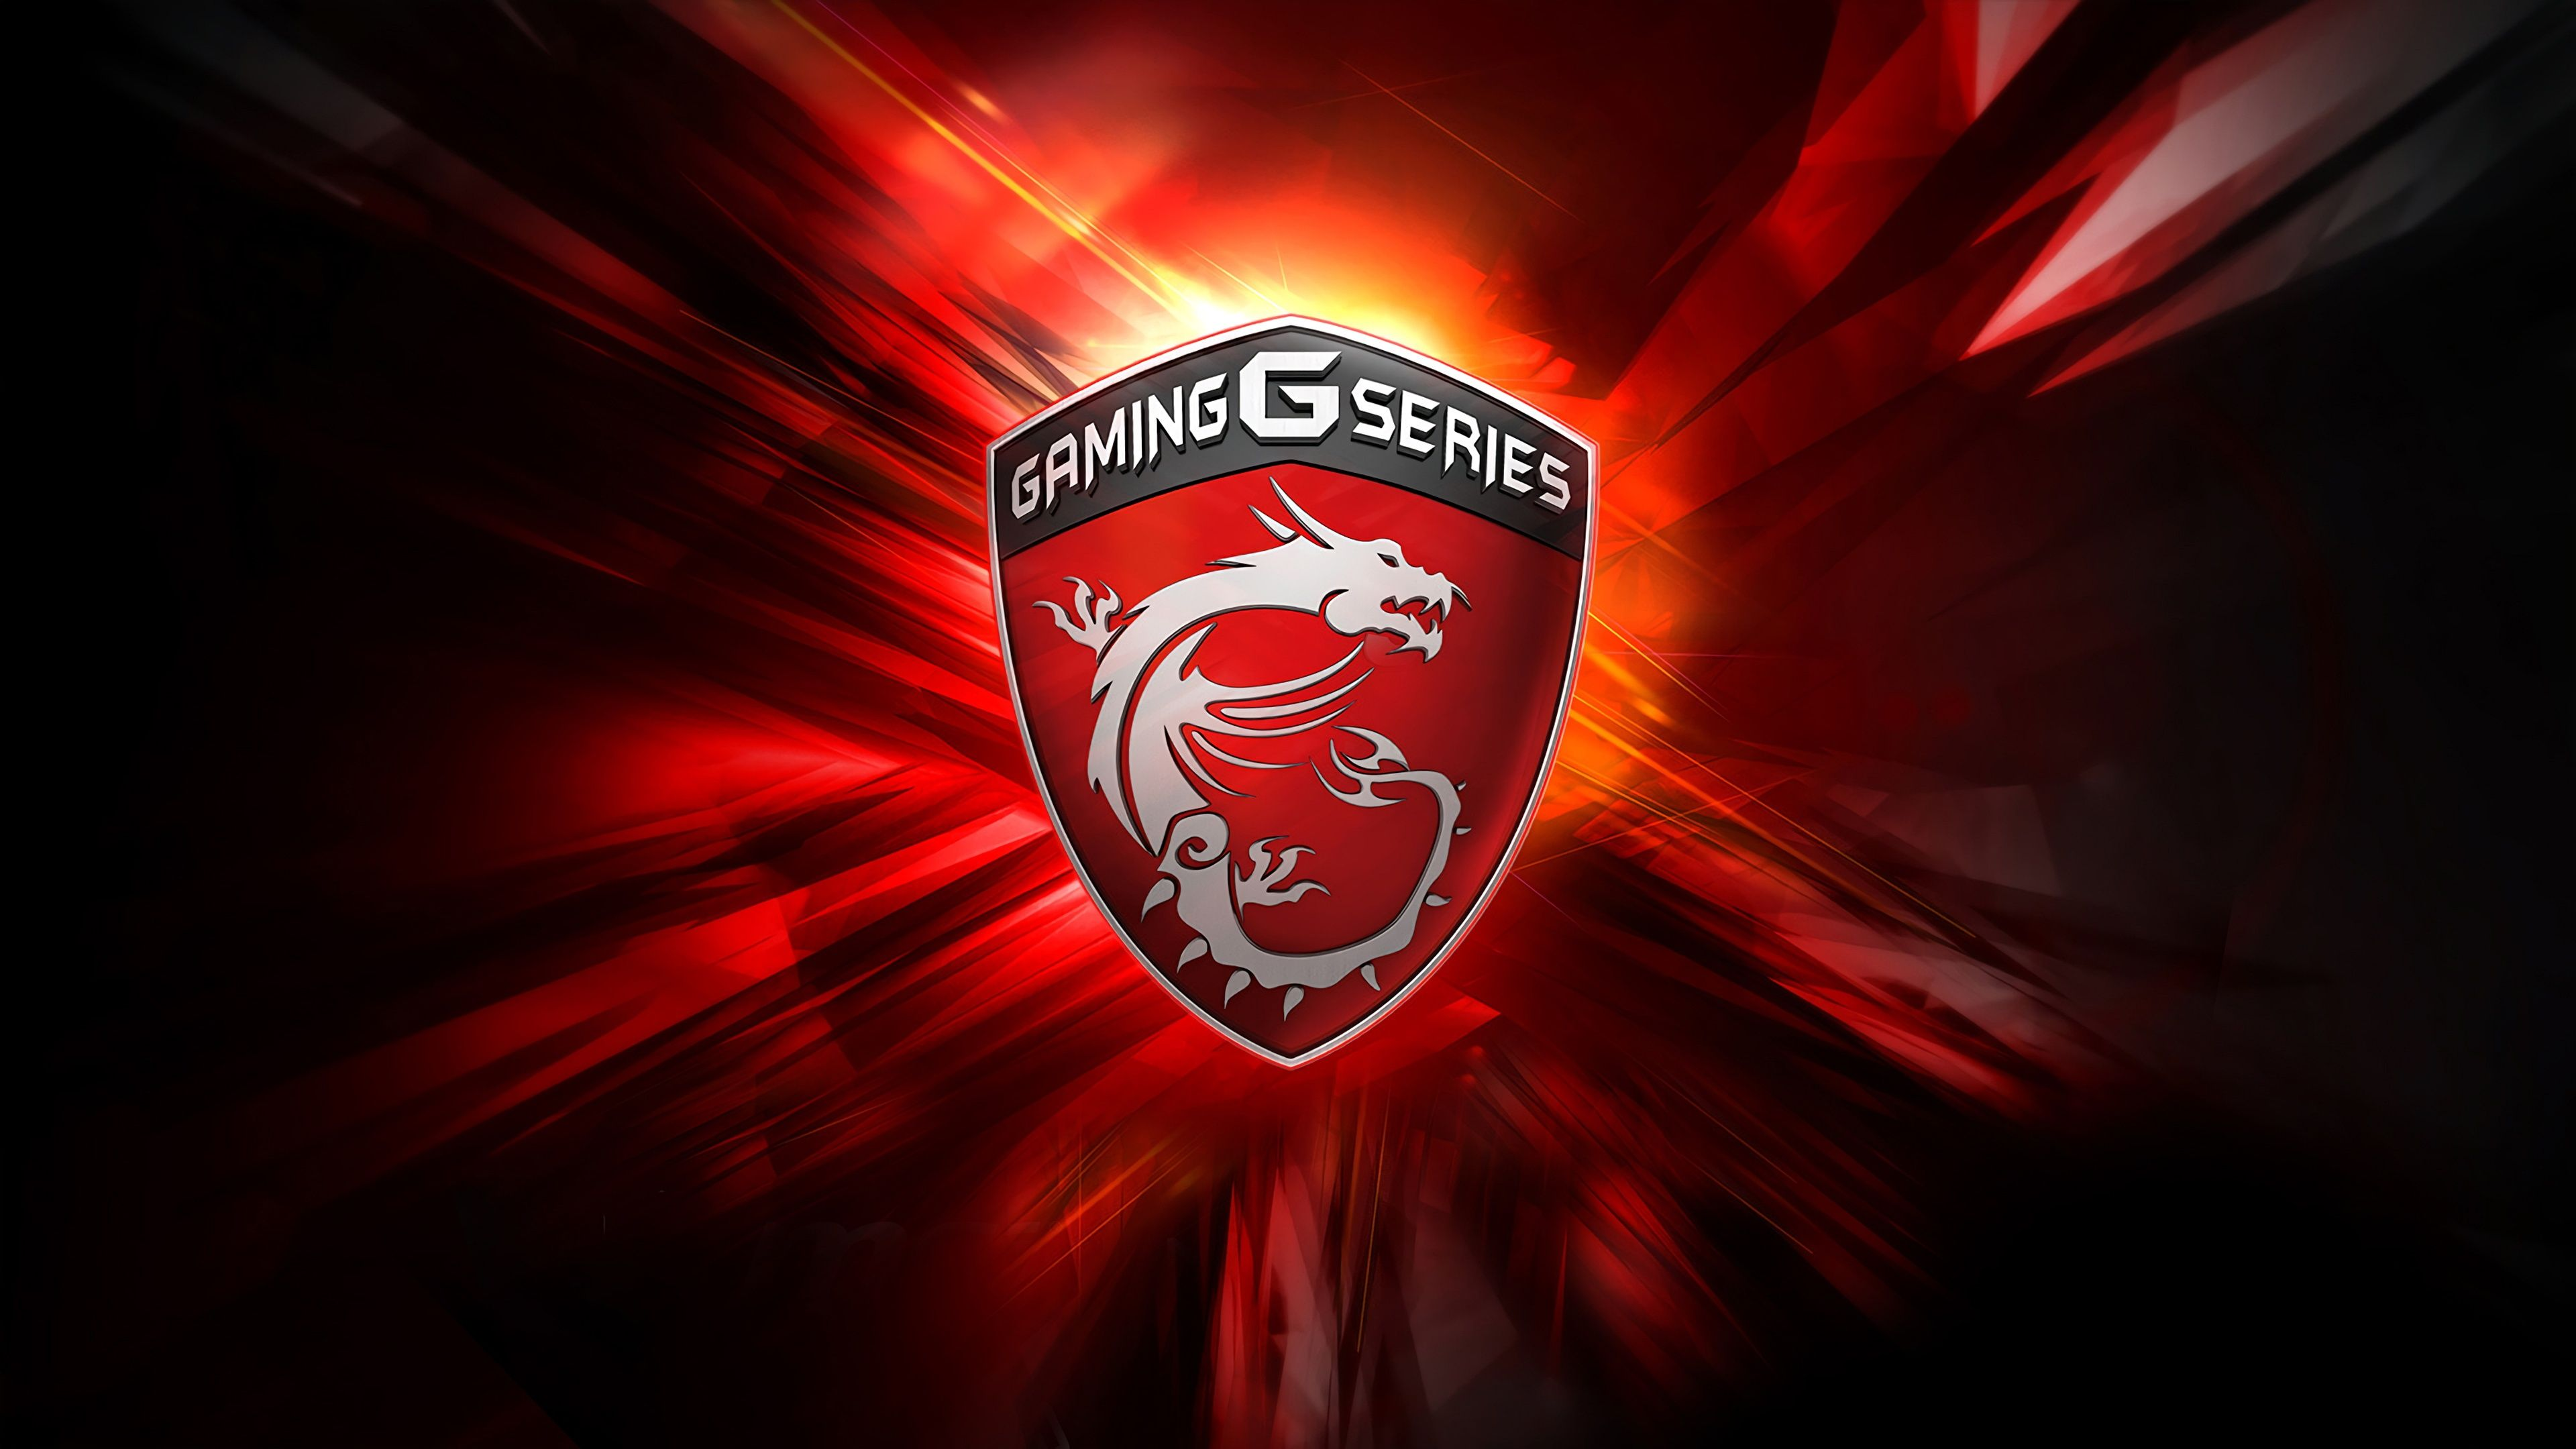 10 New Msi Gaming Series Wallpaper Full Hd 1920 1080 For: MSI Dragon Logo Gaming G Series 4K 3840x2160 Wallpaper